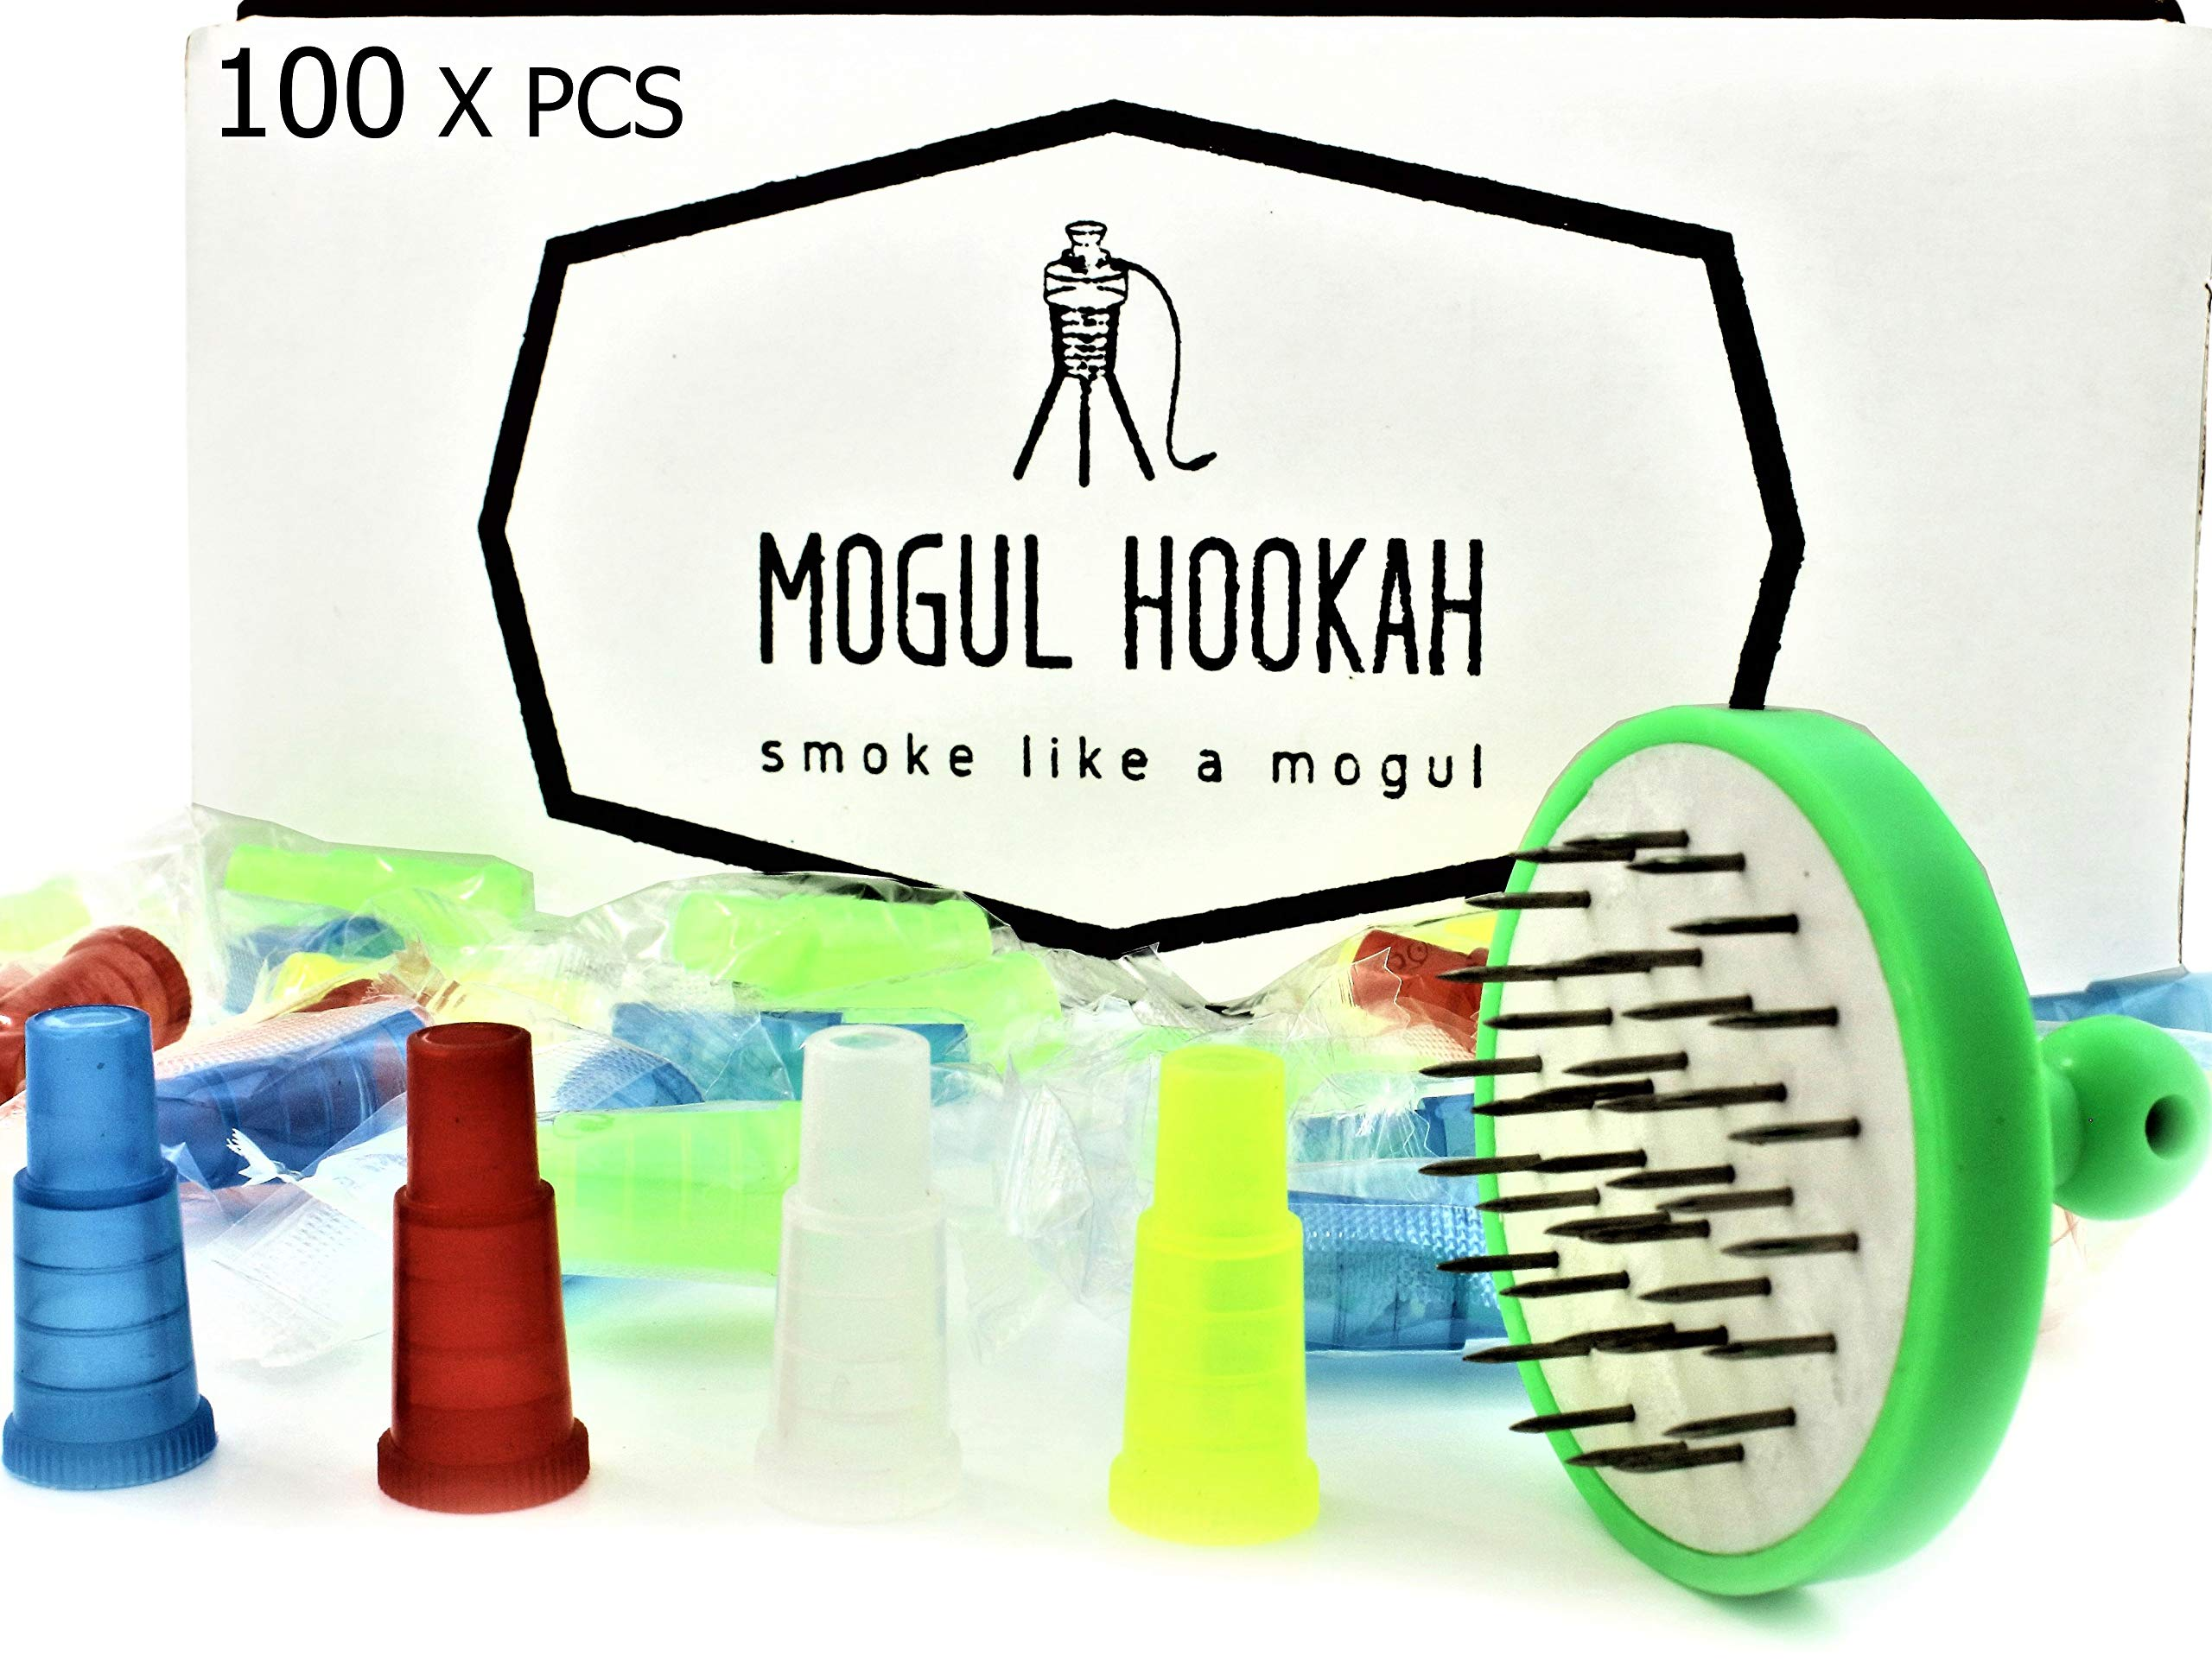 Hookah Tips Shisha Accessories Mouthpiece tip | Nargila Foil Puncher | Foil Hole Poker | Disposable Hookah Hose Adapter Tips | Hookah Hoses Supplies Mouth Pieces Plastic Female Tips (100) by MOGUL HOOKAH